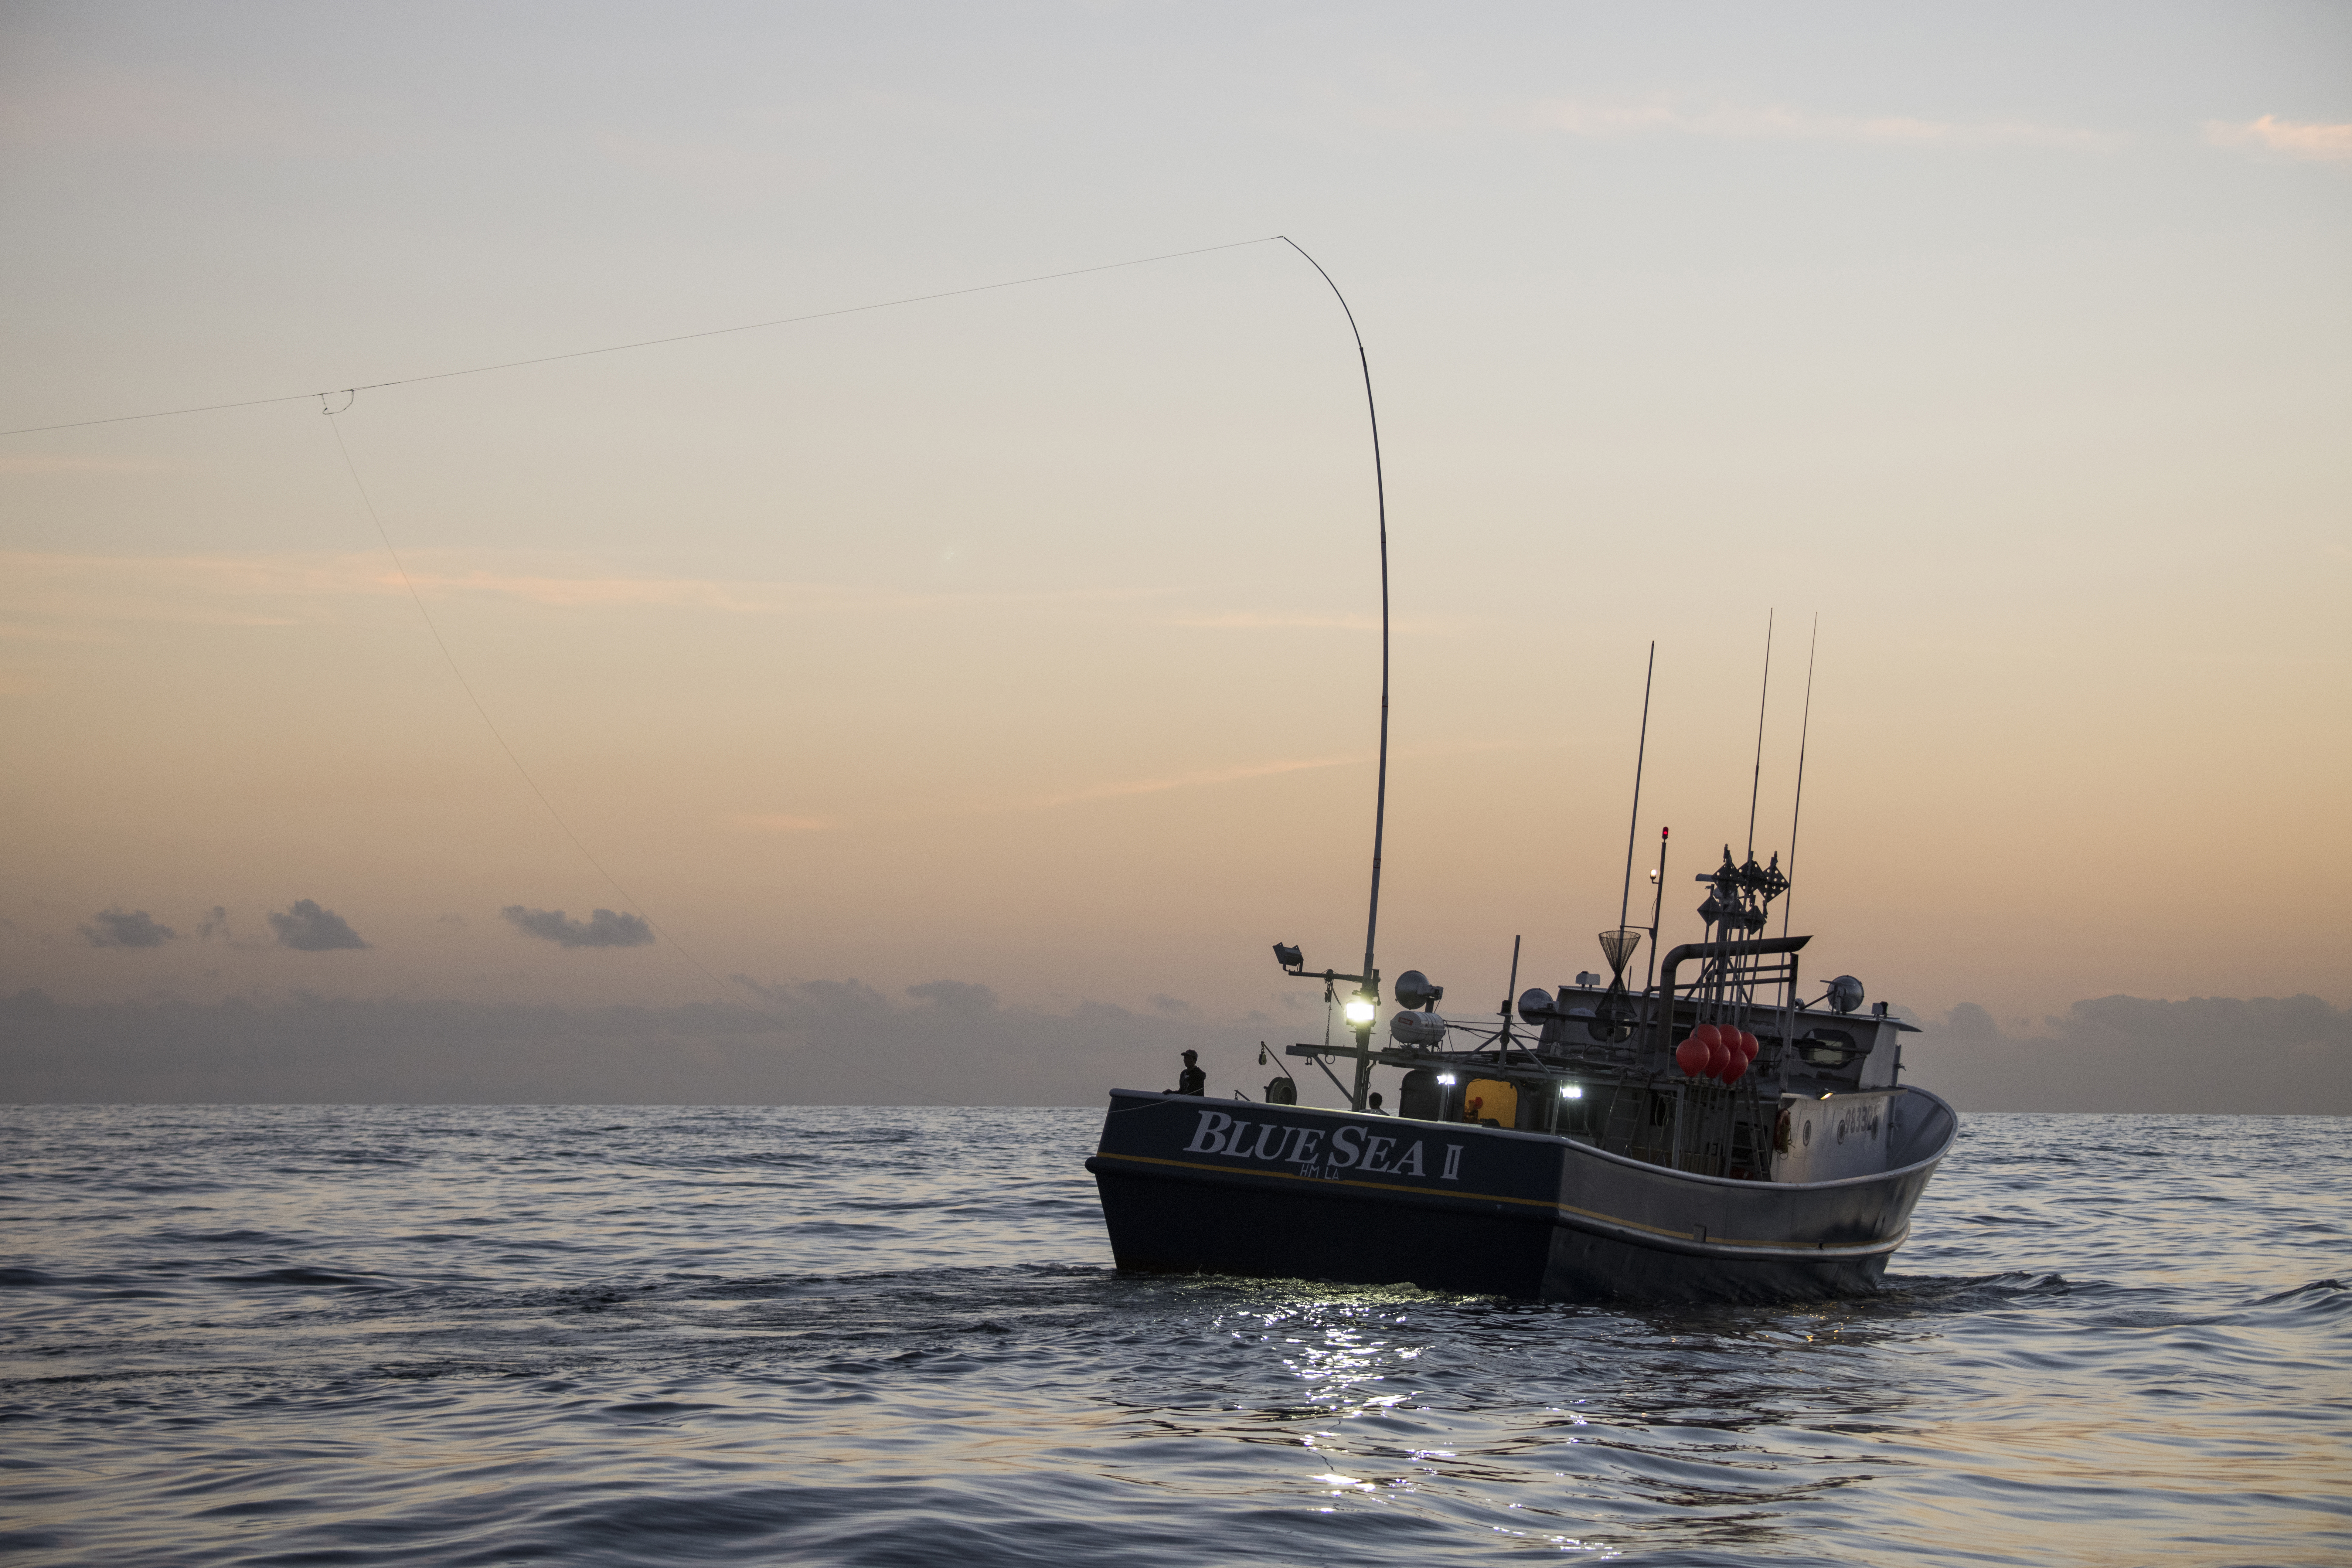 A fishing vessel equipped with Green Stick alternative gear out on the water at dusk.